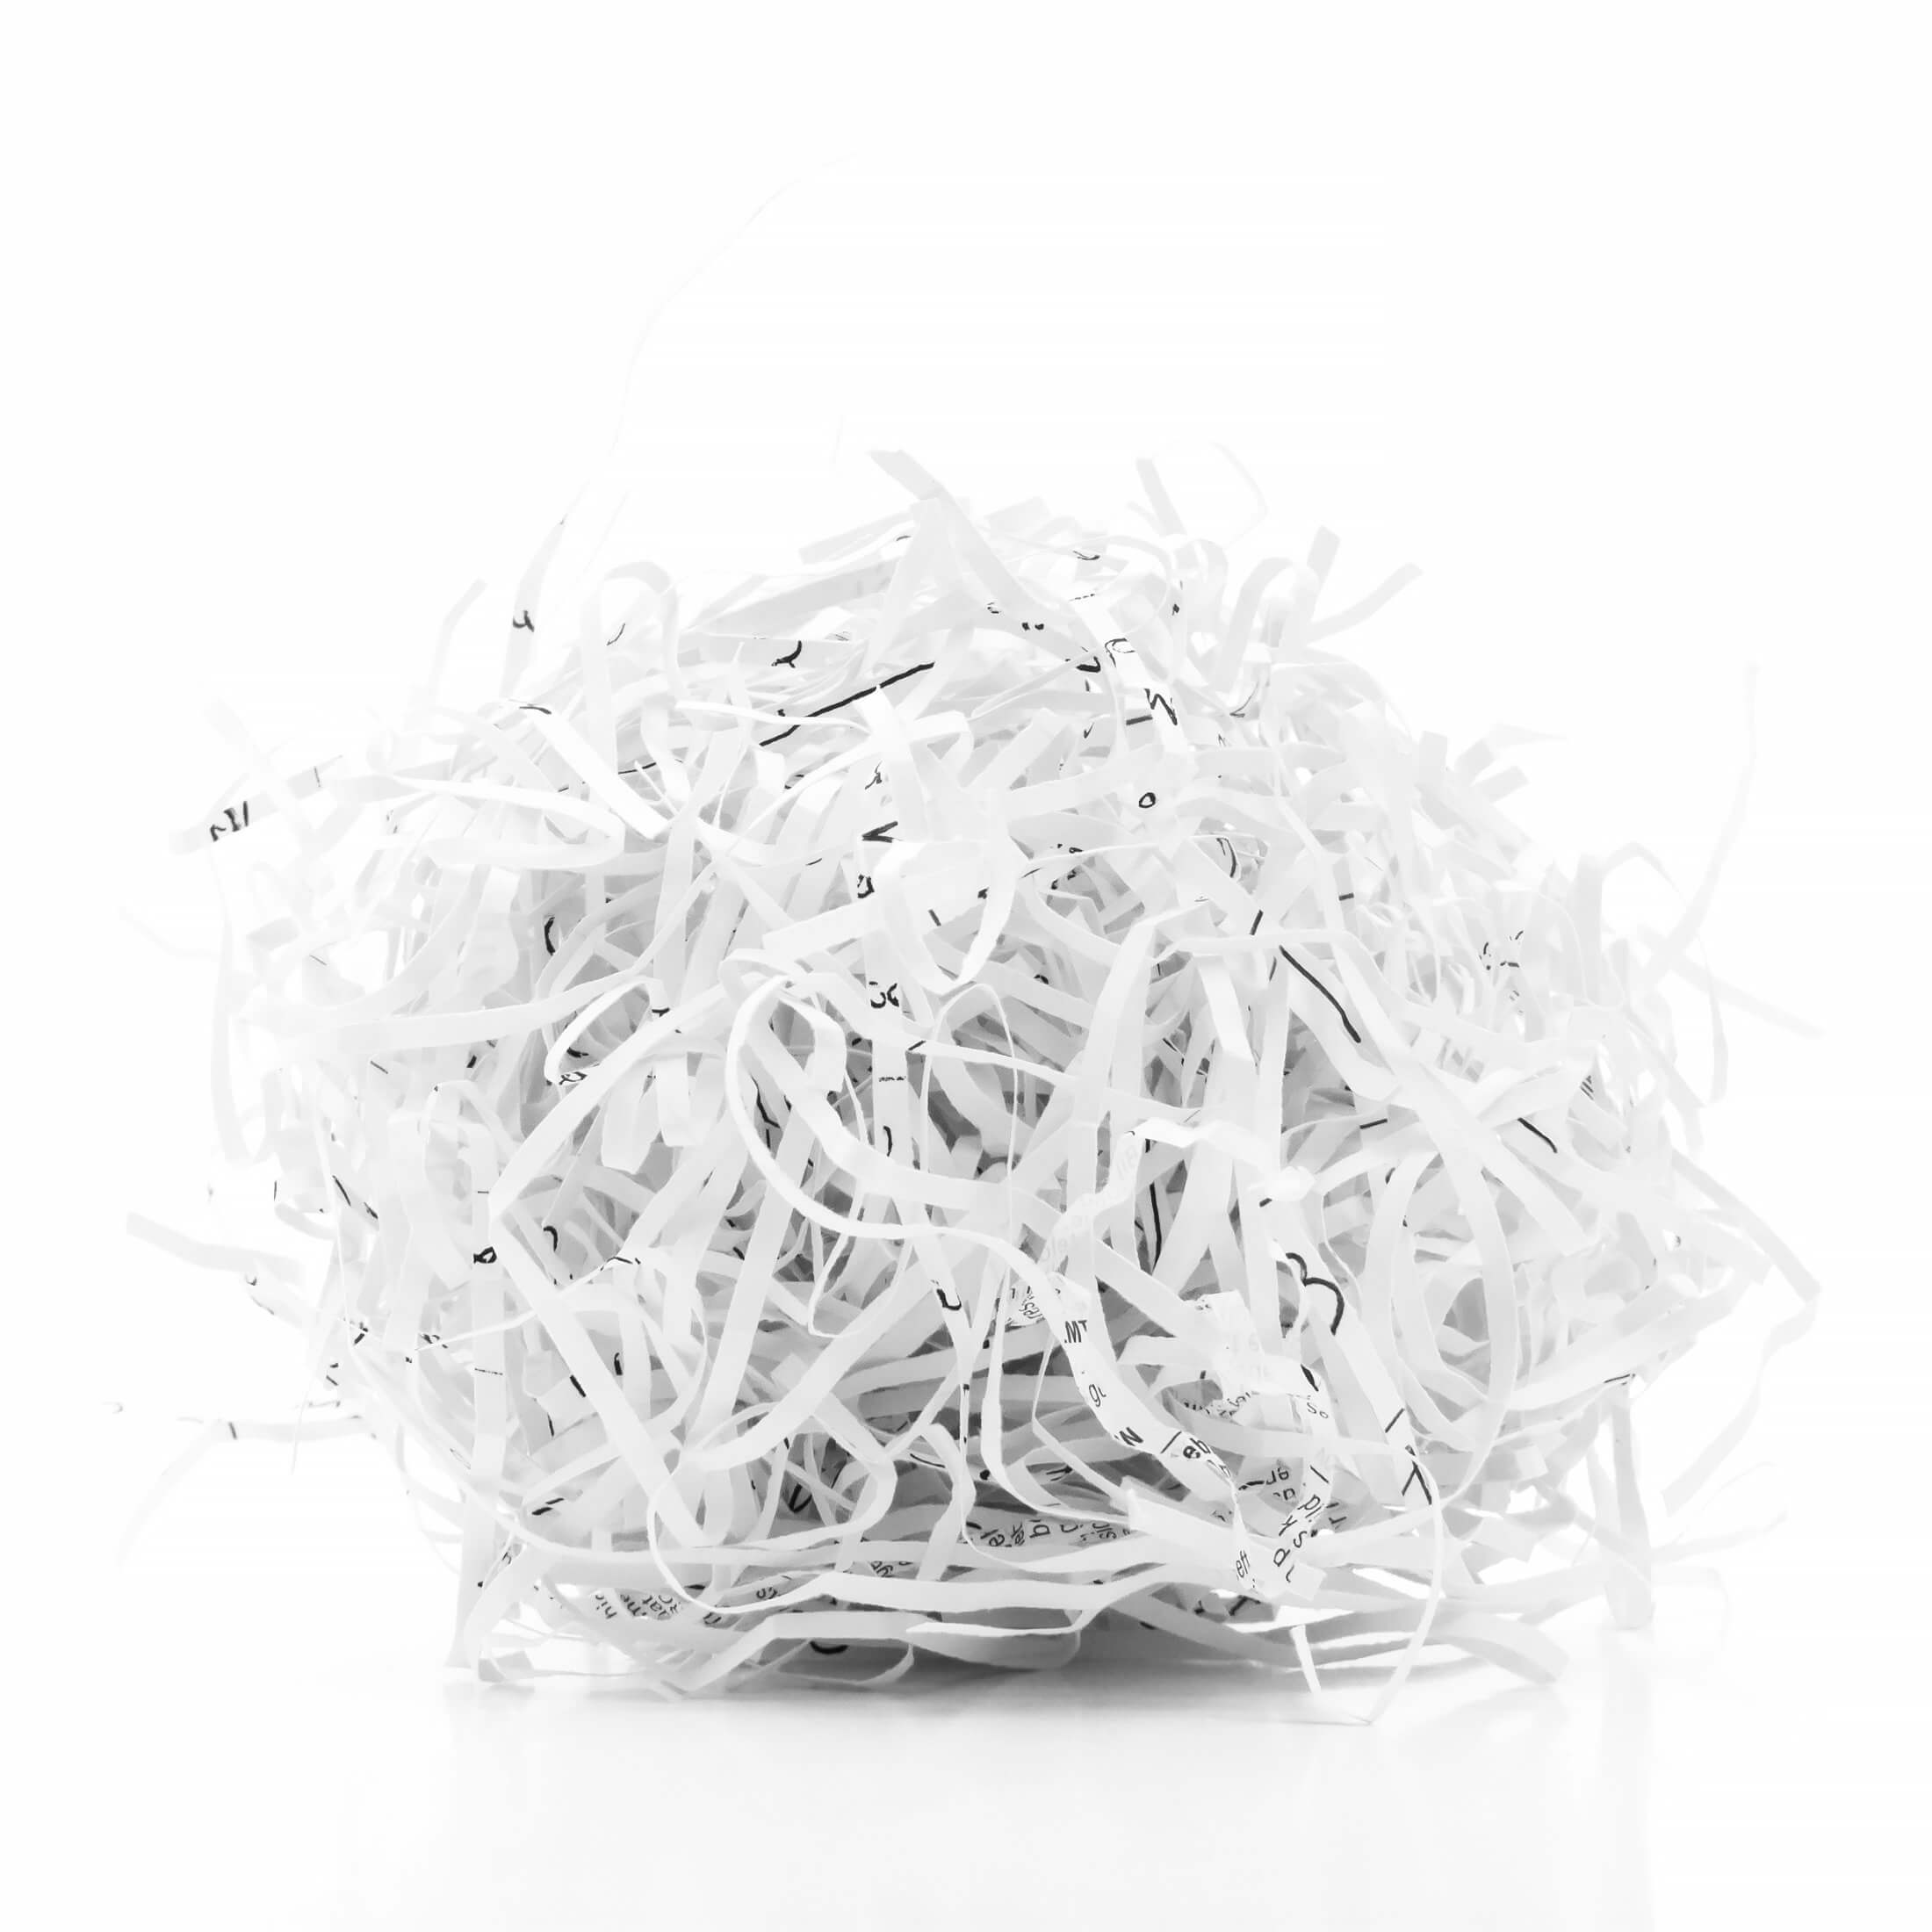 KonMari Tidying. Responsible Discarding Takes On New Meaning In This Category. Here's A Lovely Ball Of Shredded Paper - Yum.